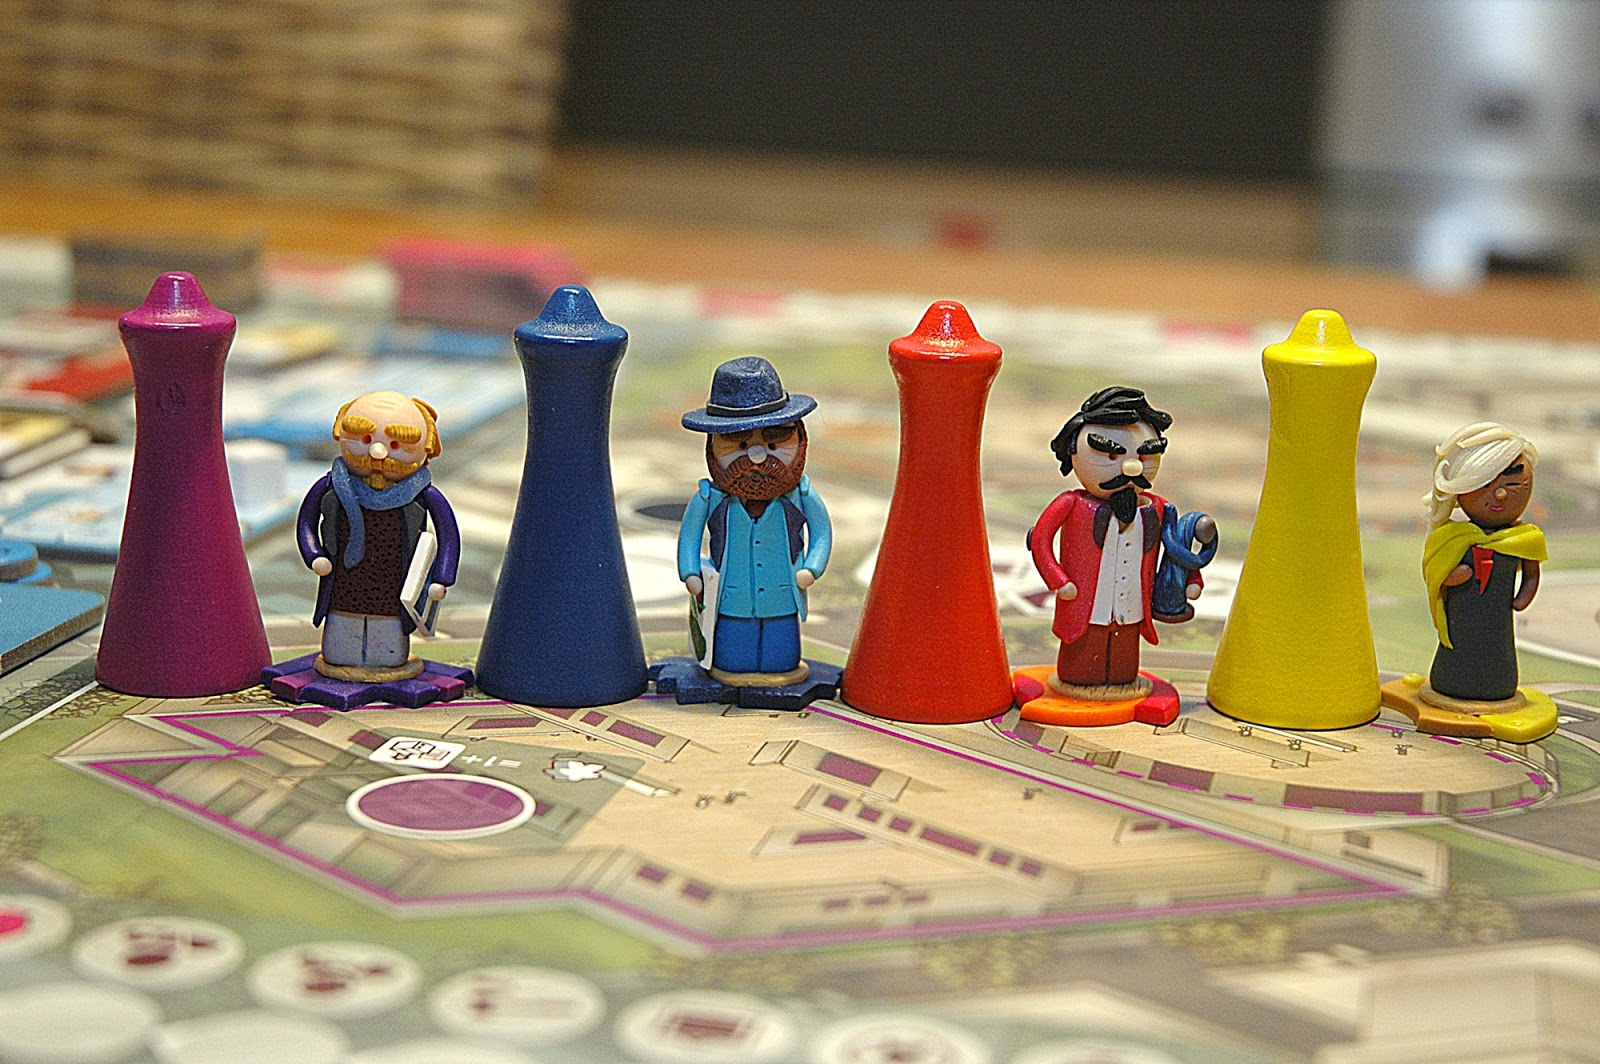 The Gallerist A Game By Vital Lacerda The Art Of: Hobold's Grotte